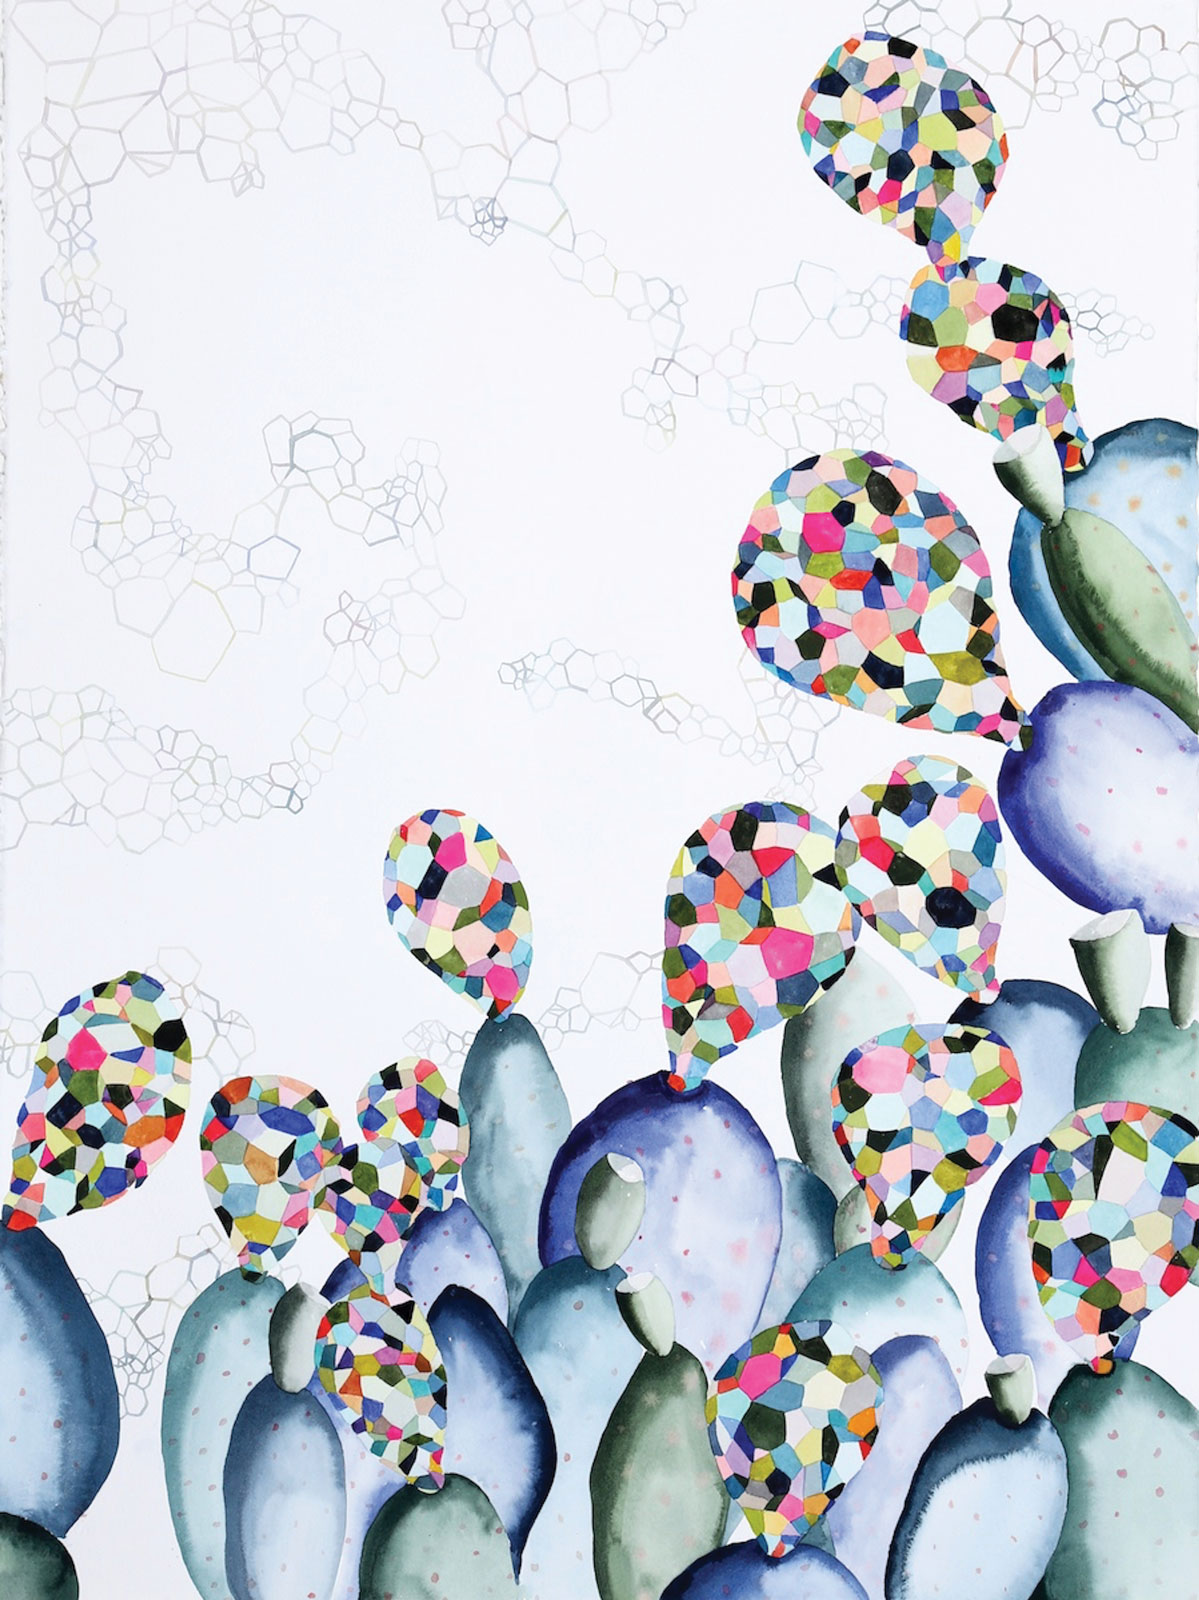 <i>Hybrid II</i> (2015), watercolor on paper, 22˝ × 30˝